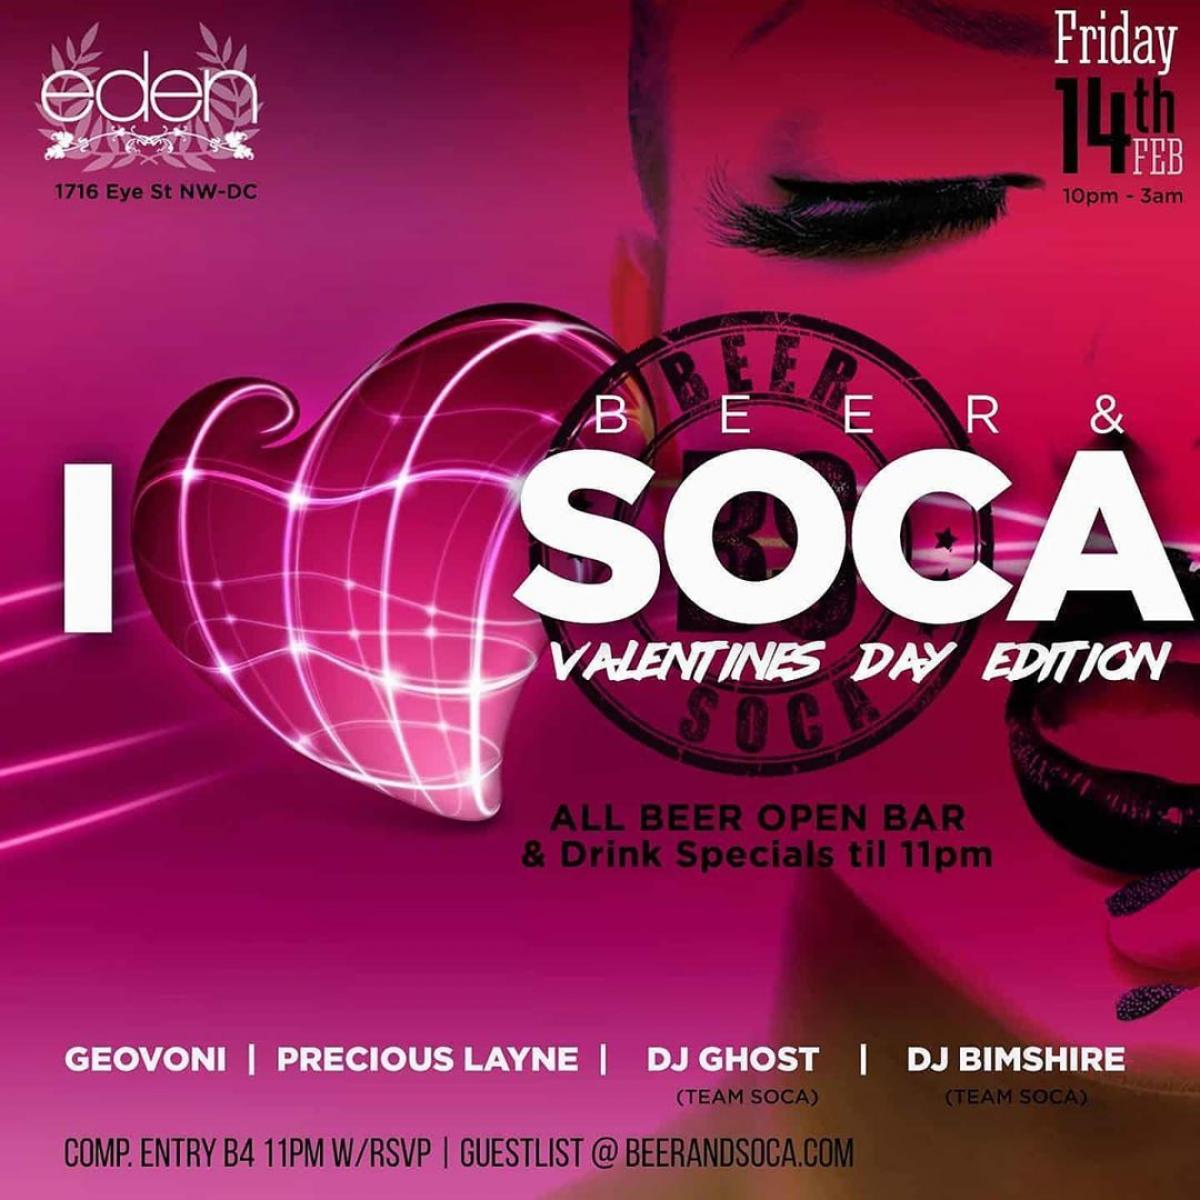 I Love Beer and Soca - Valentines Day Edition flyer or graphic.